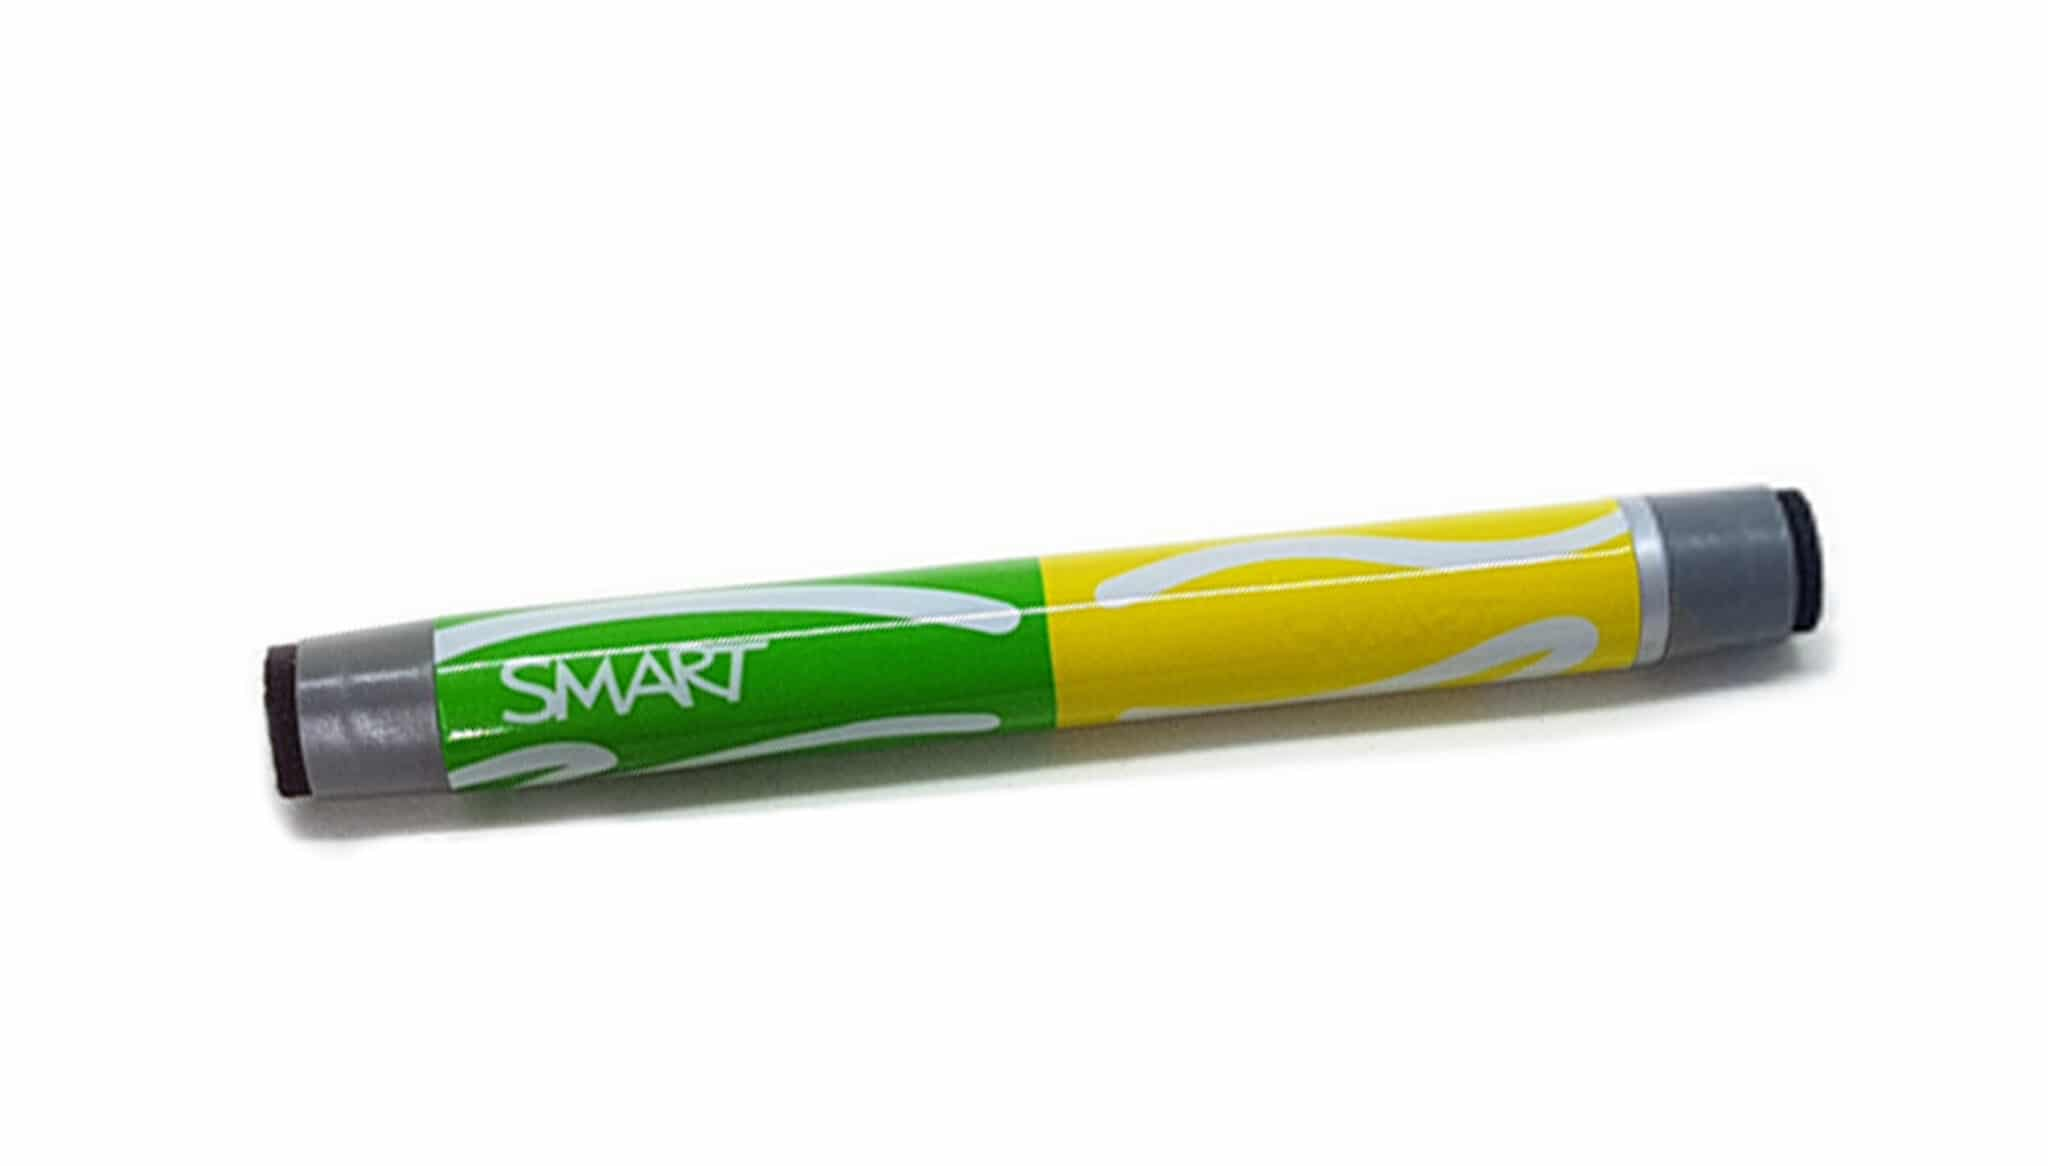 SMART highlighter pen